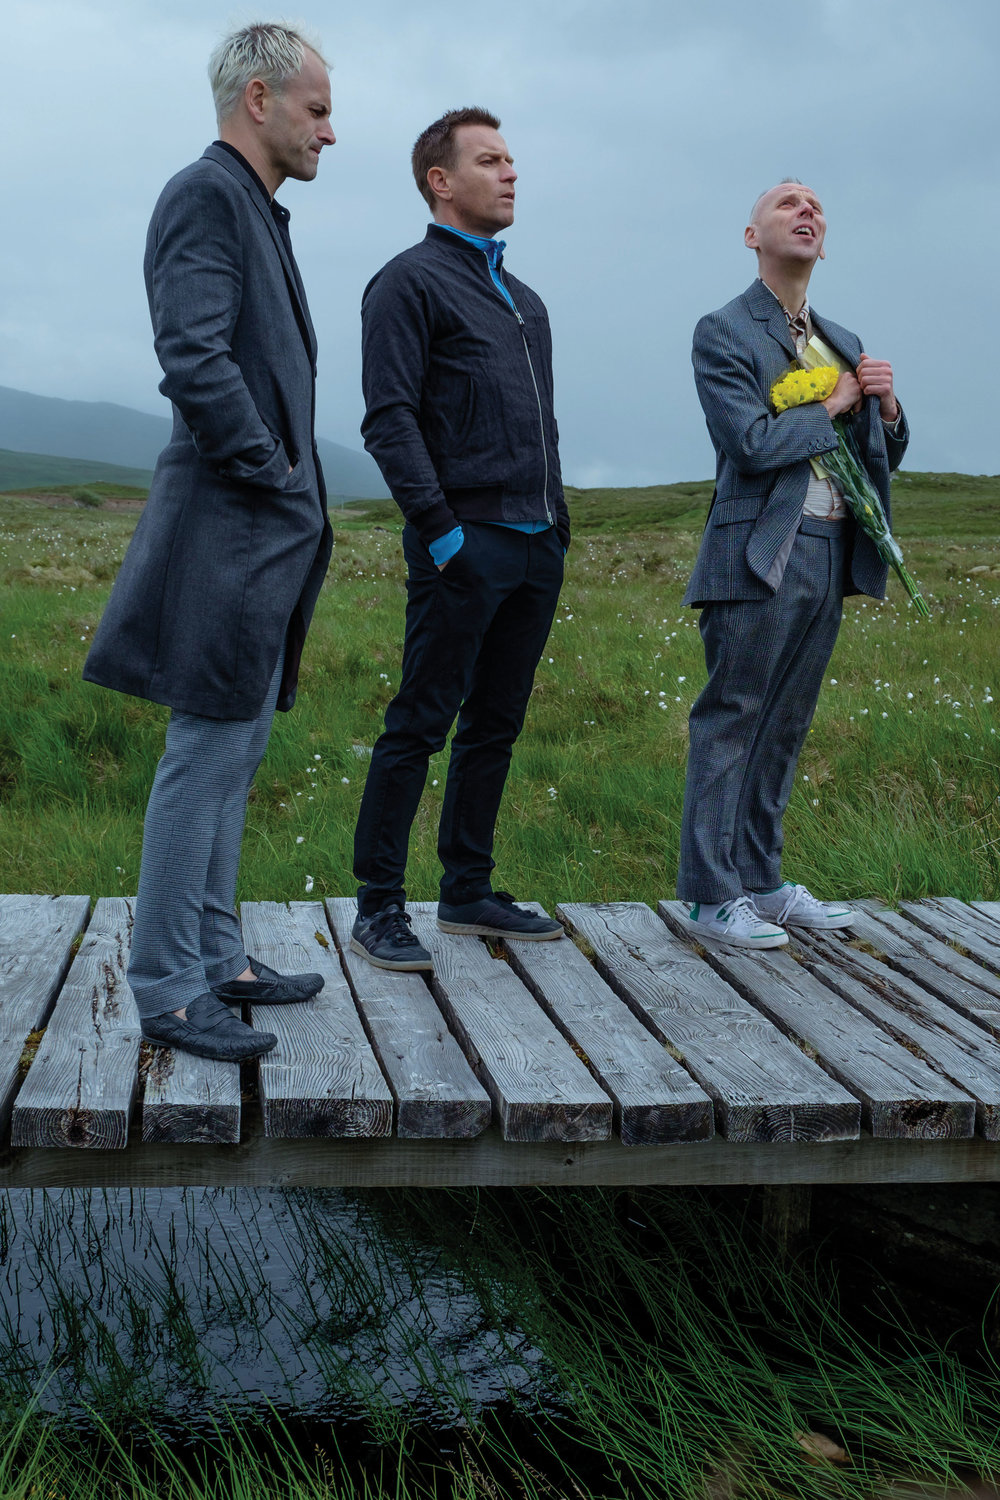 Reunited after 20 years: Jonny Lee Miller as Sick Boy, Ewan McGregor as Mark Renton, and Ewen Bremner as Spud.